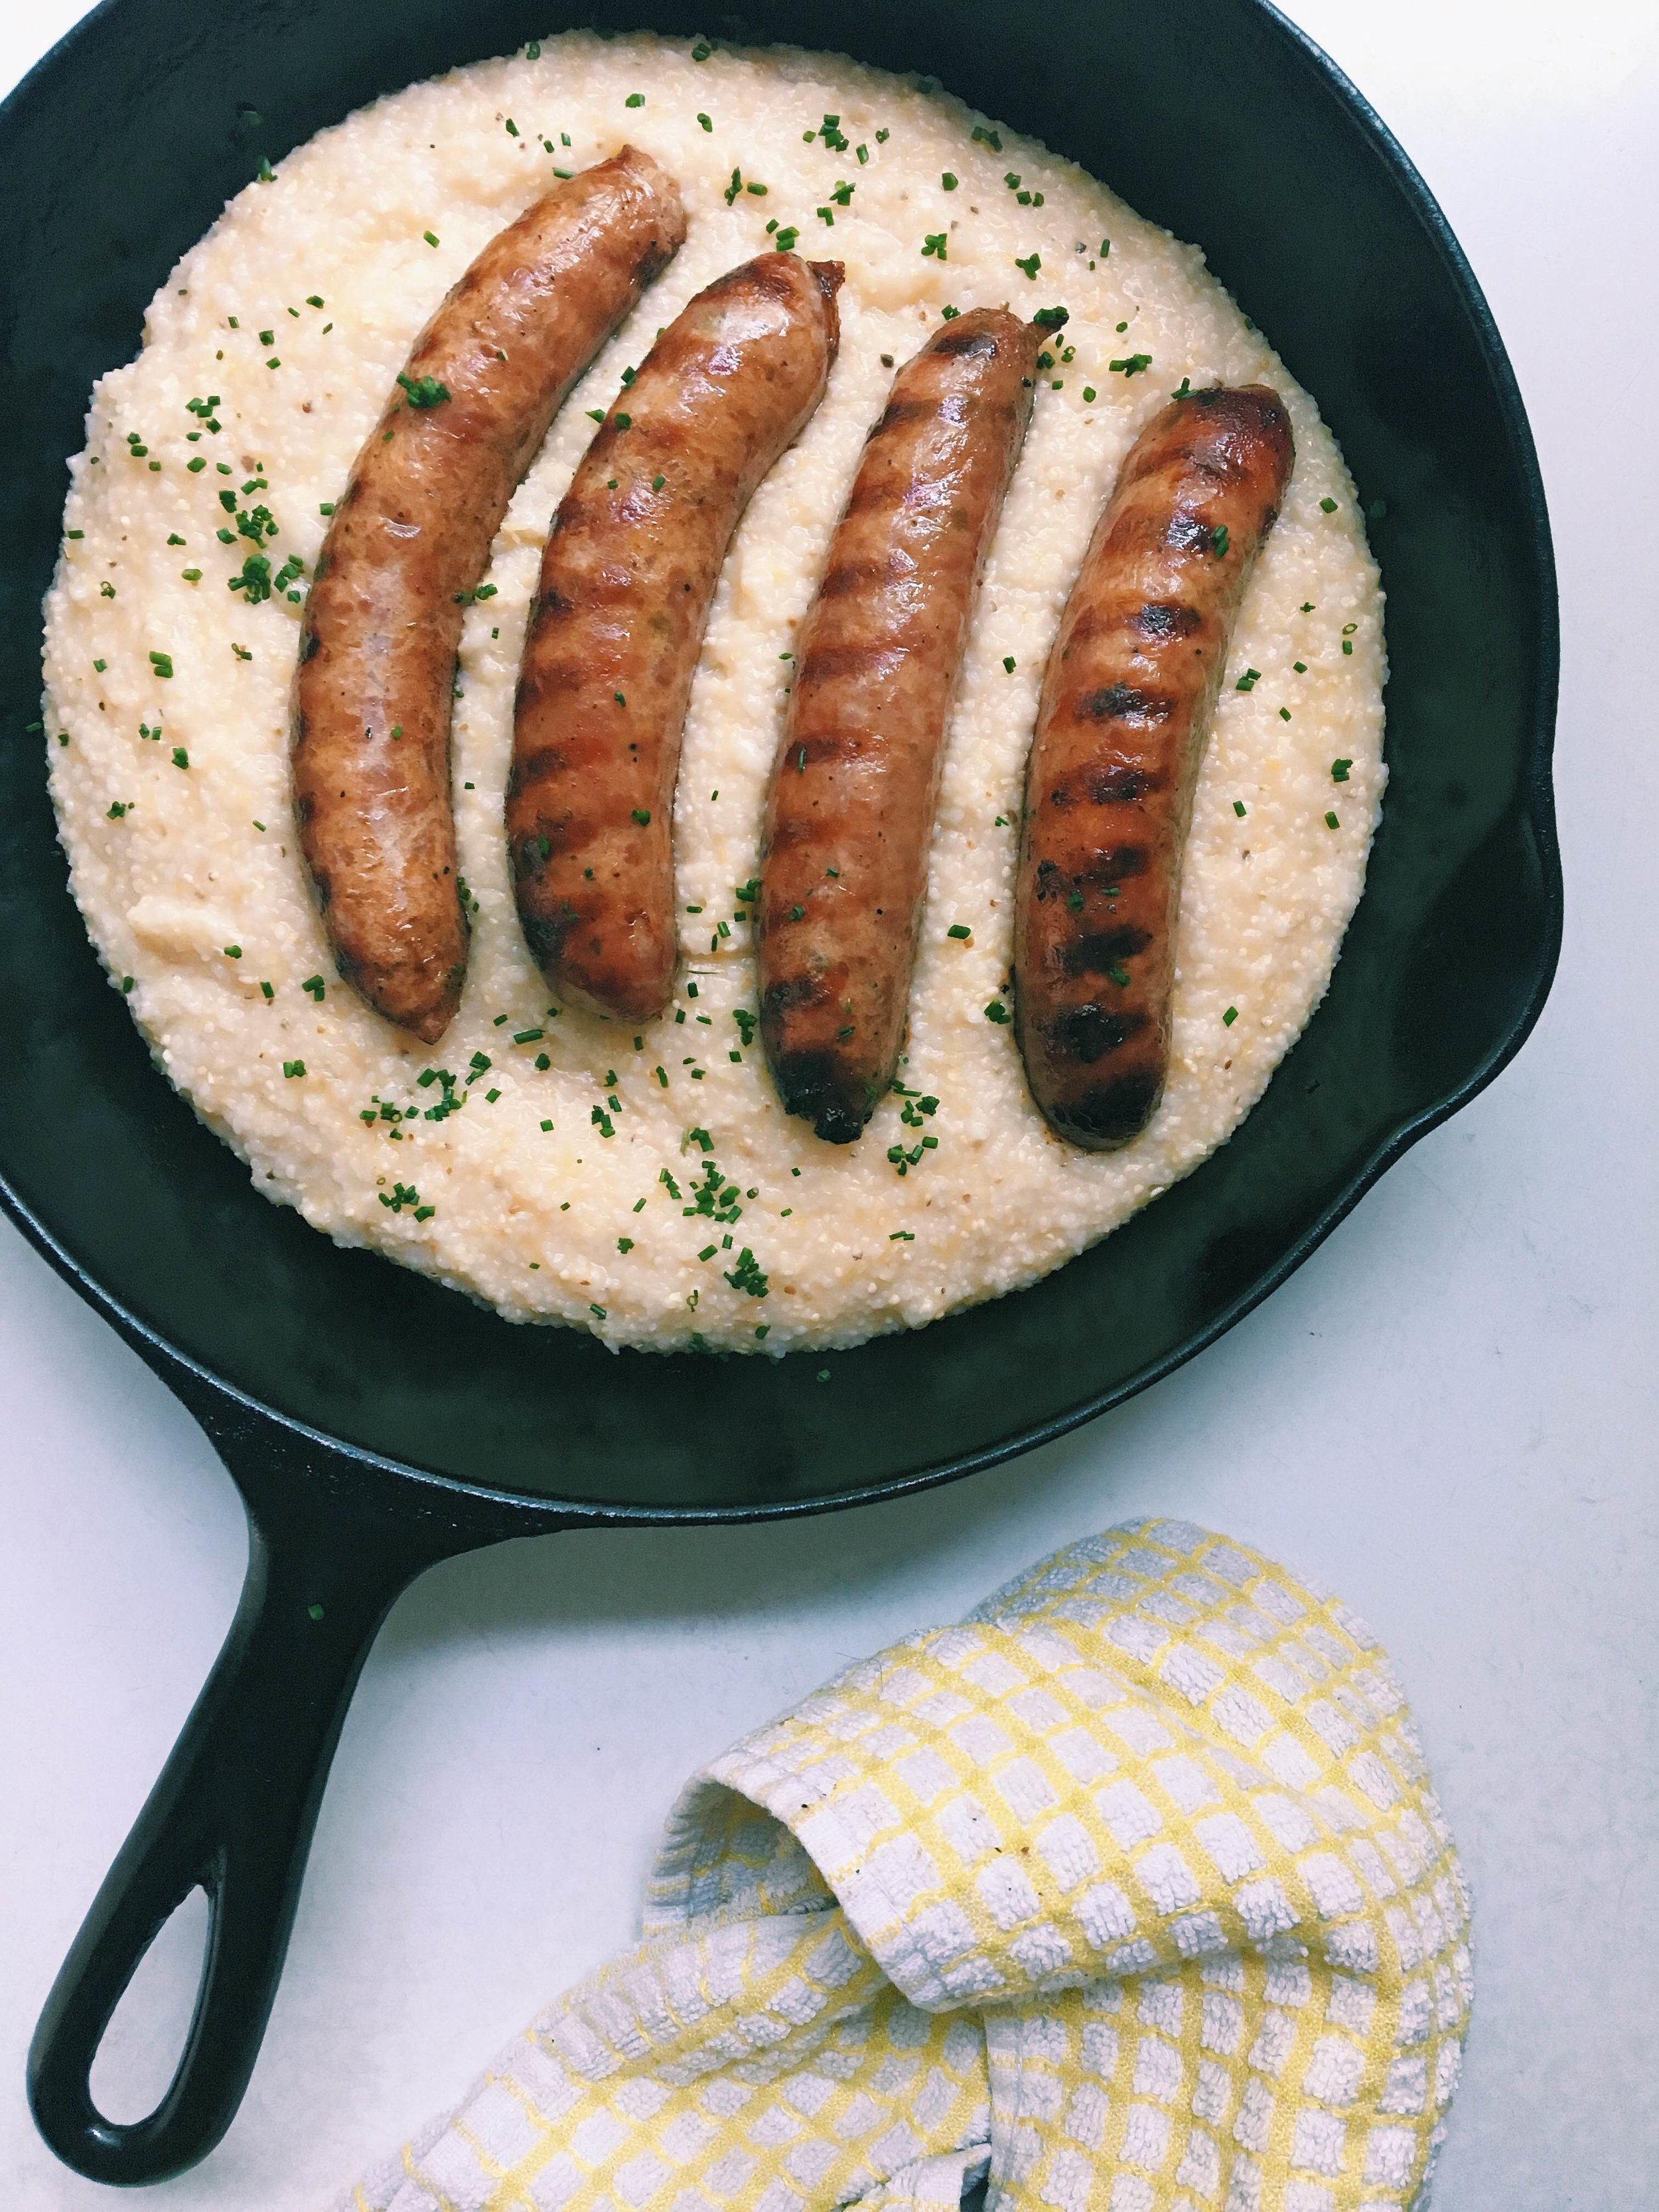 Milton's Local Bacon Sausage and Woodson's Mill Grits